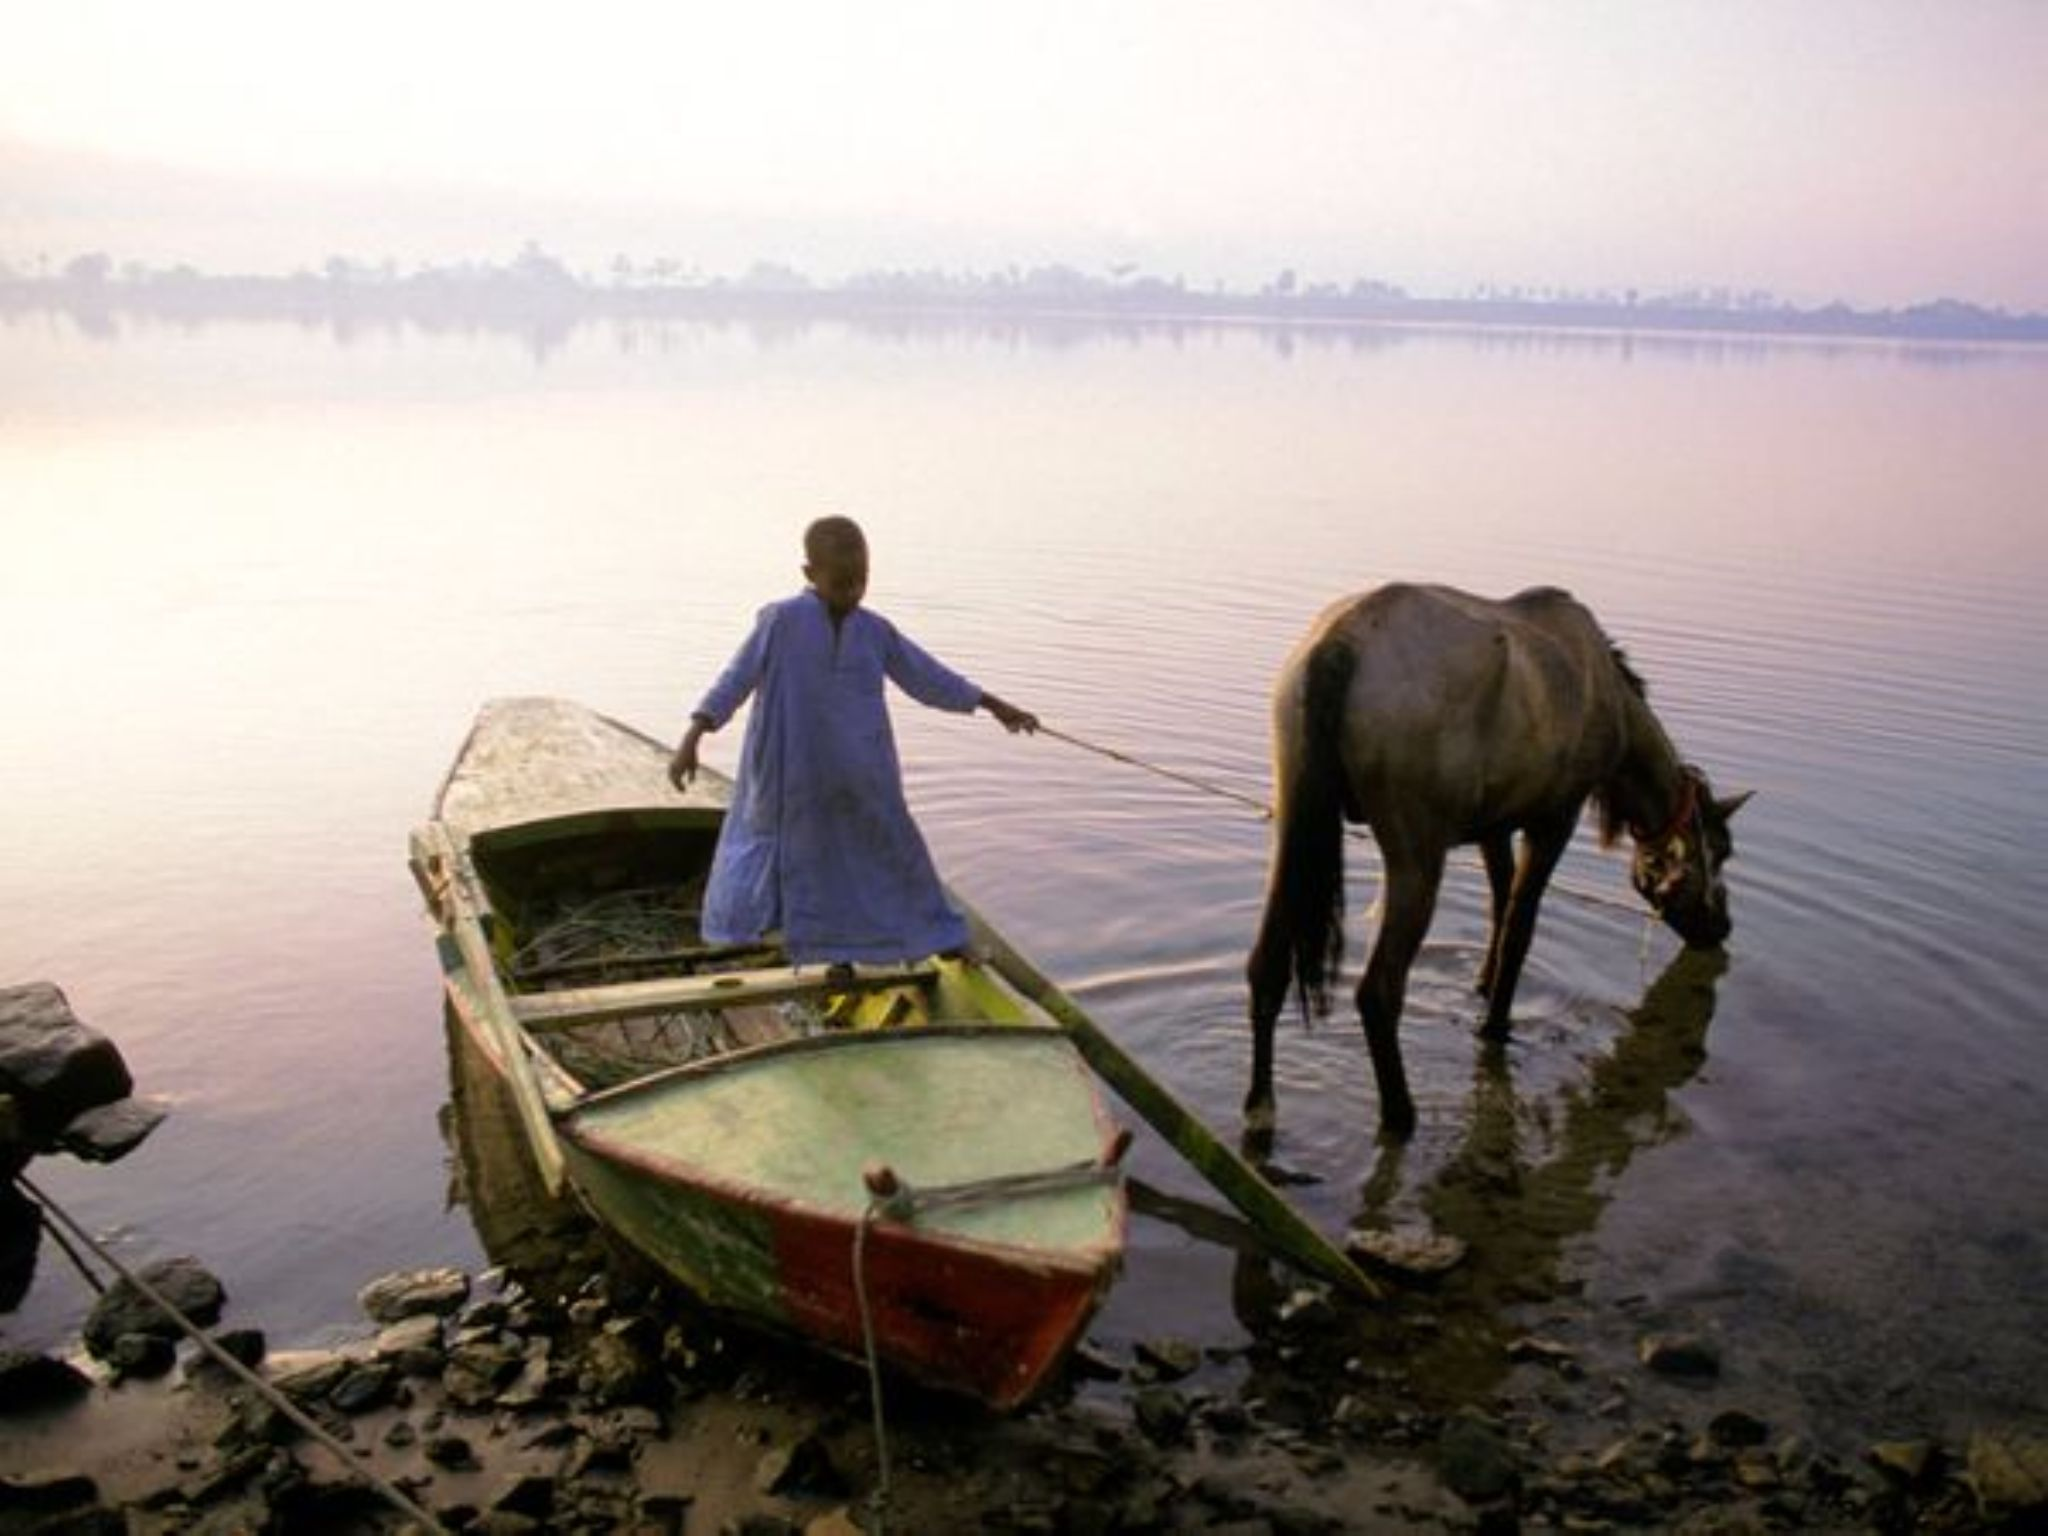 Morning on the Nile by PhotographyNa.